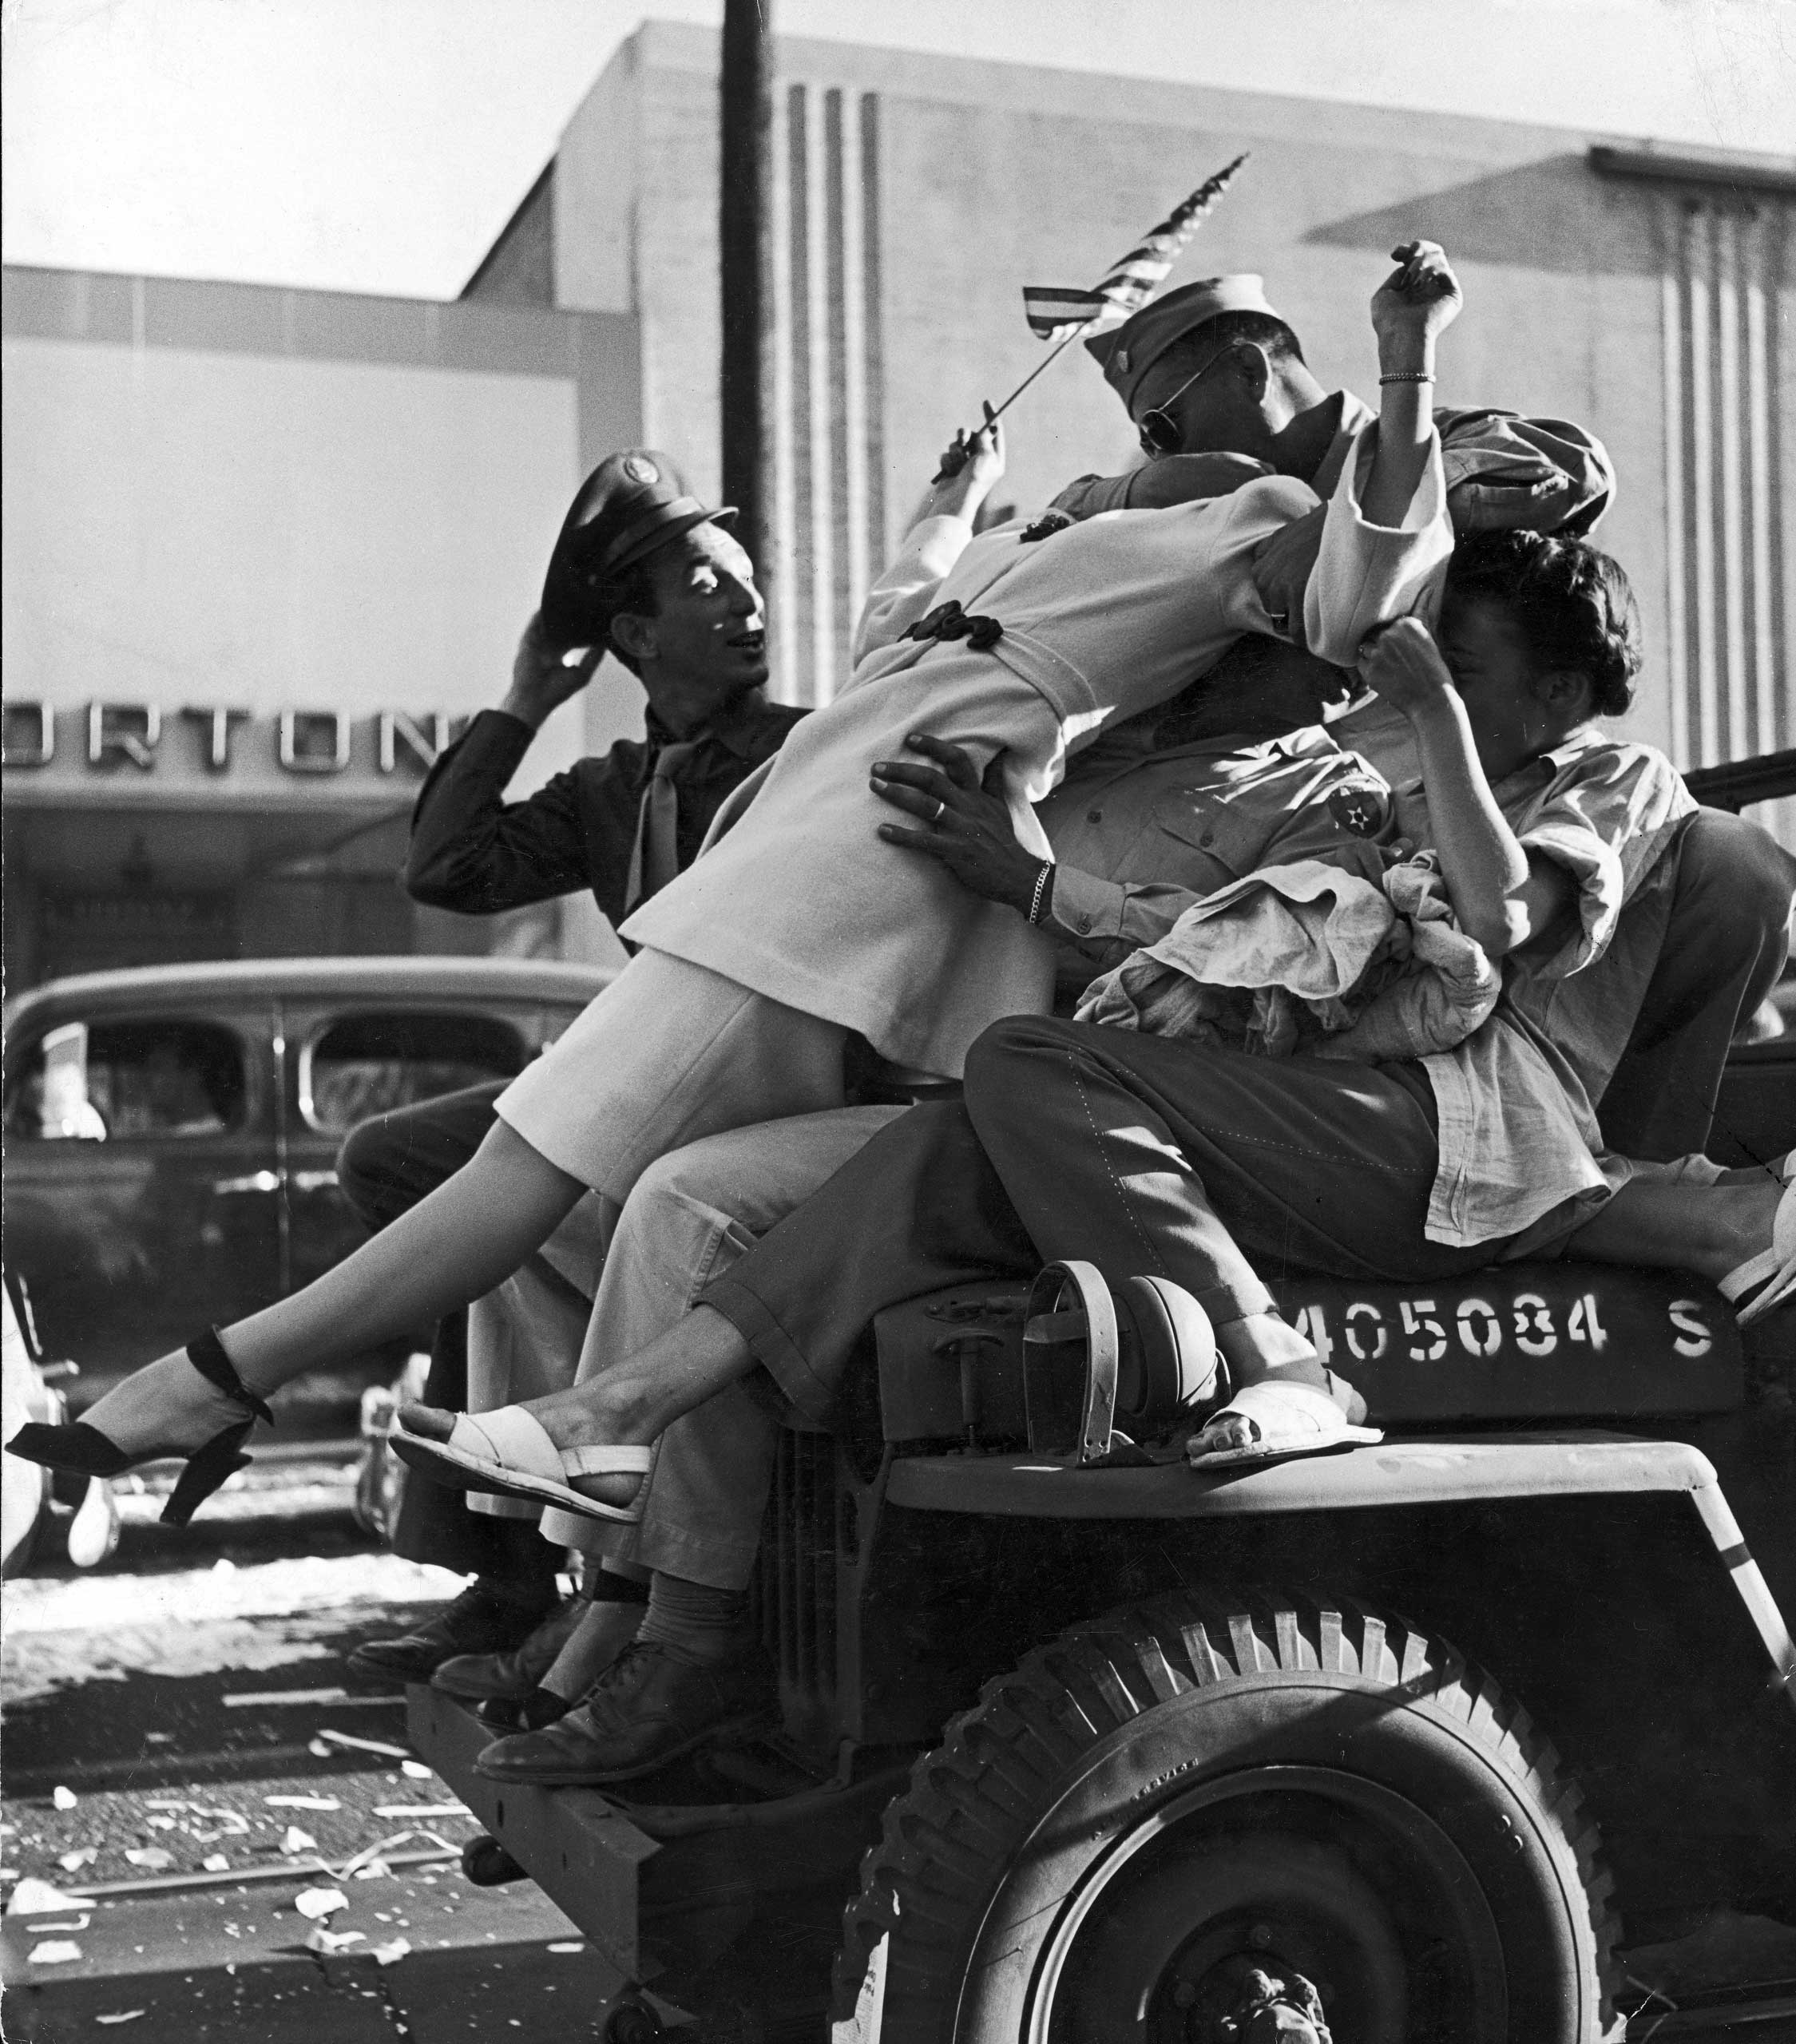 Caption from LIFE.  On Hollywood Boulevard in Los Angeles carousing servicemen neck atop the hood of a careening jeep. The city rocked with joy as impromptu pedestrian parades and motor cavalcades whirled along, hindered only by hurled whiskey bottles, amorous drunks and collisions.